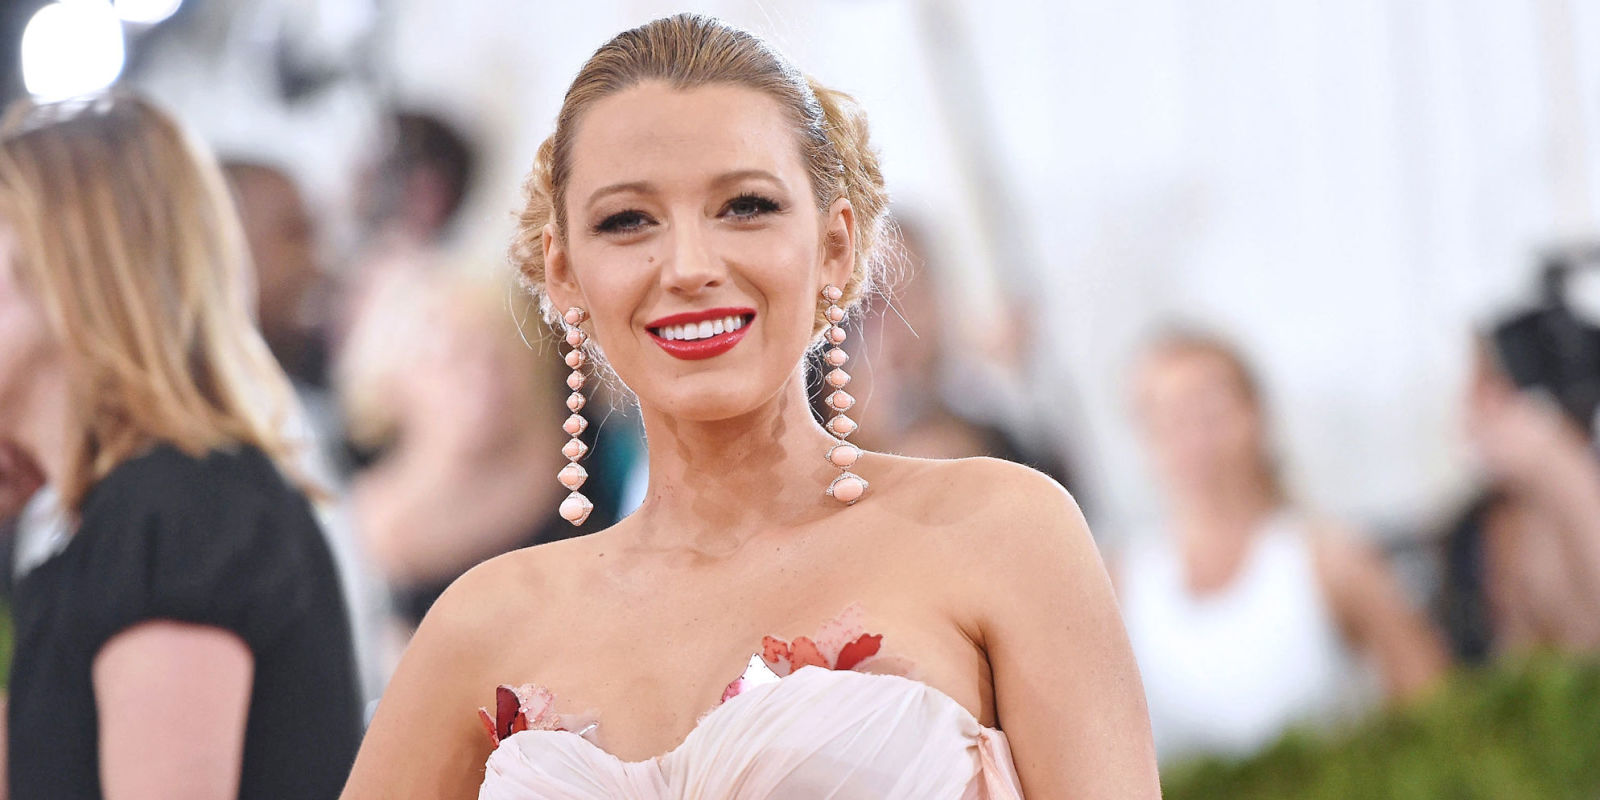 7 Things You Might Not Know About Blake Lively